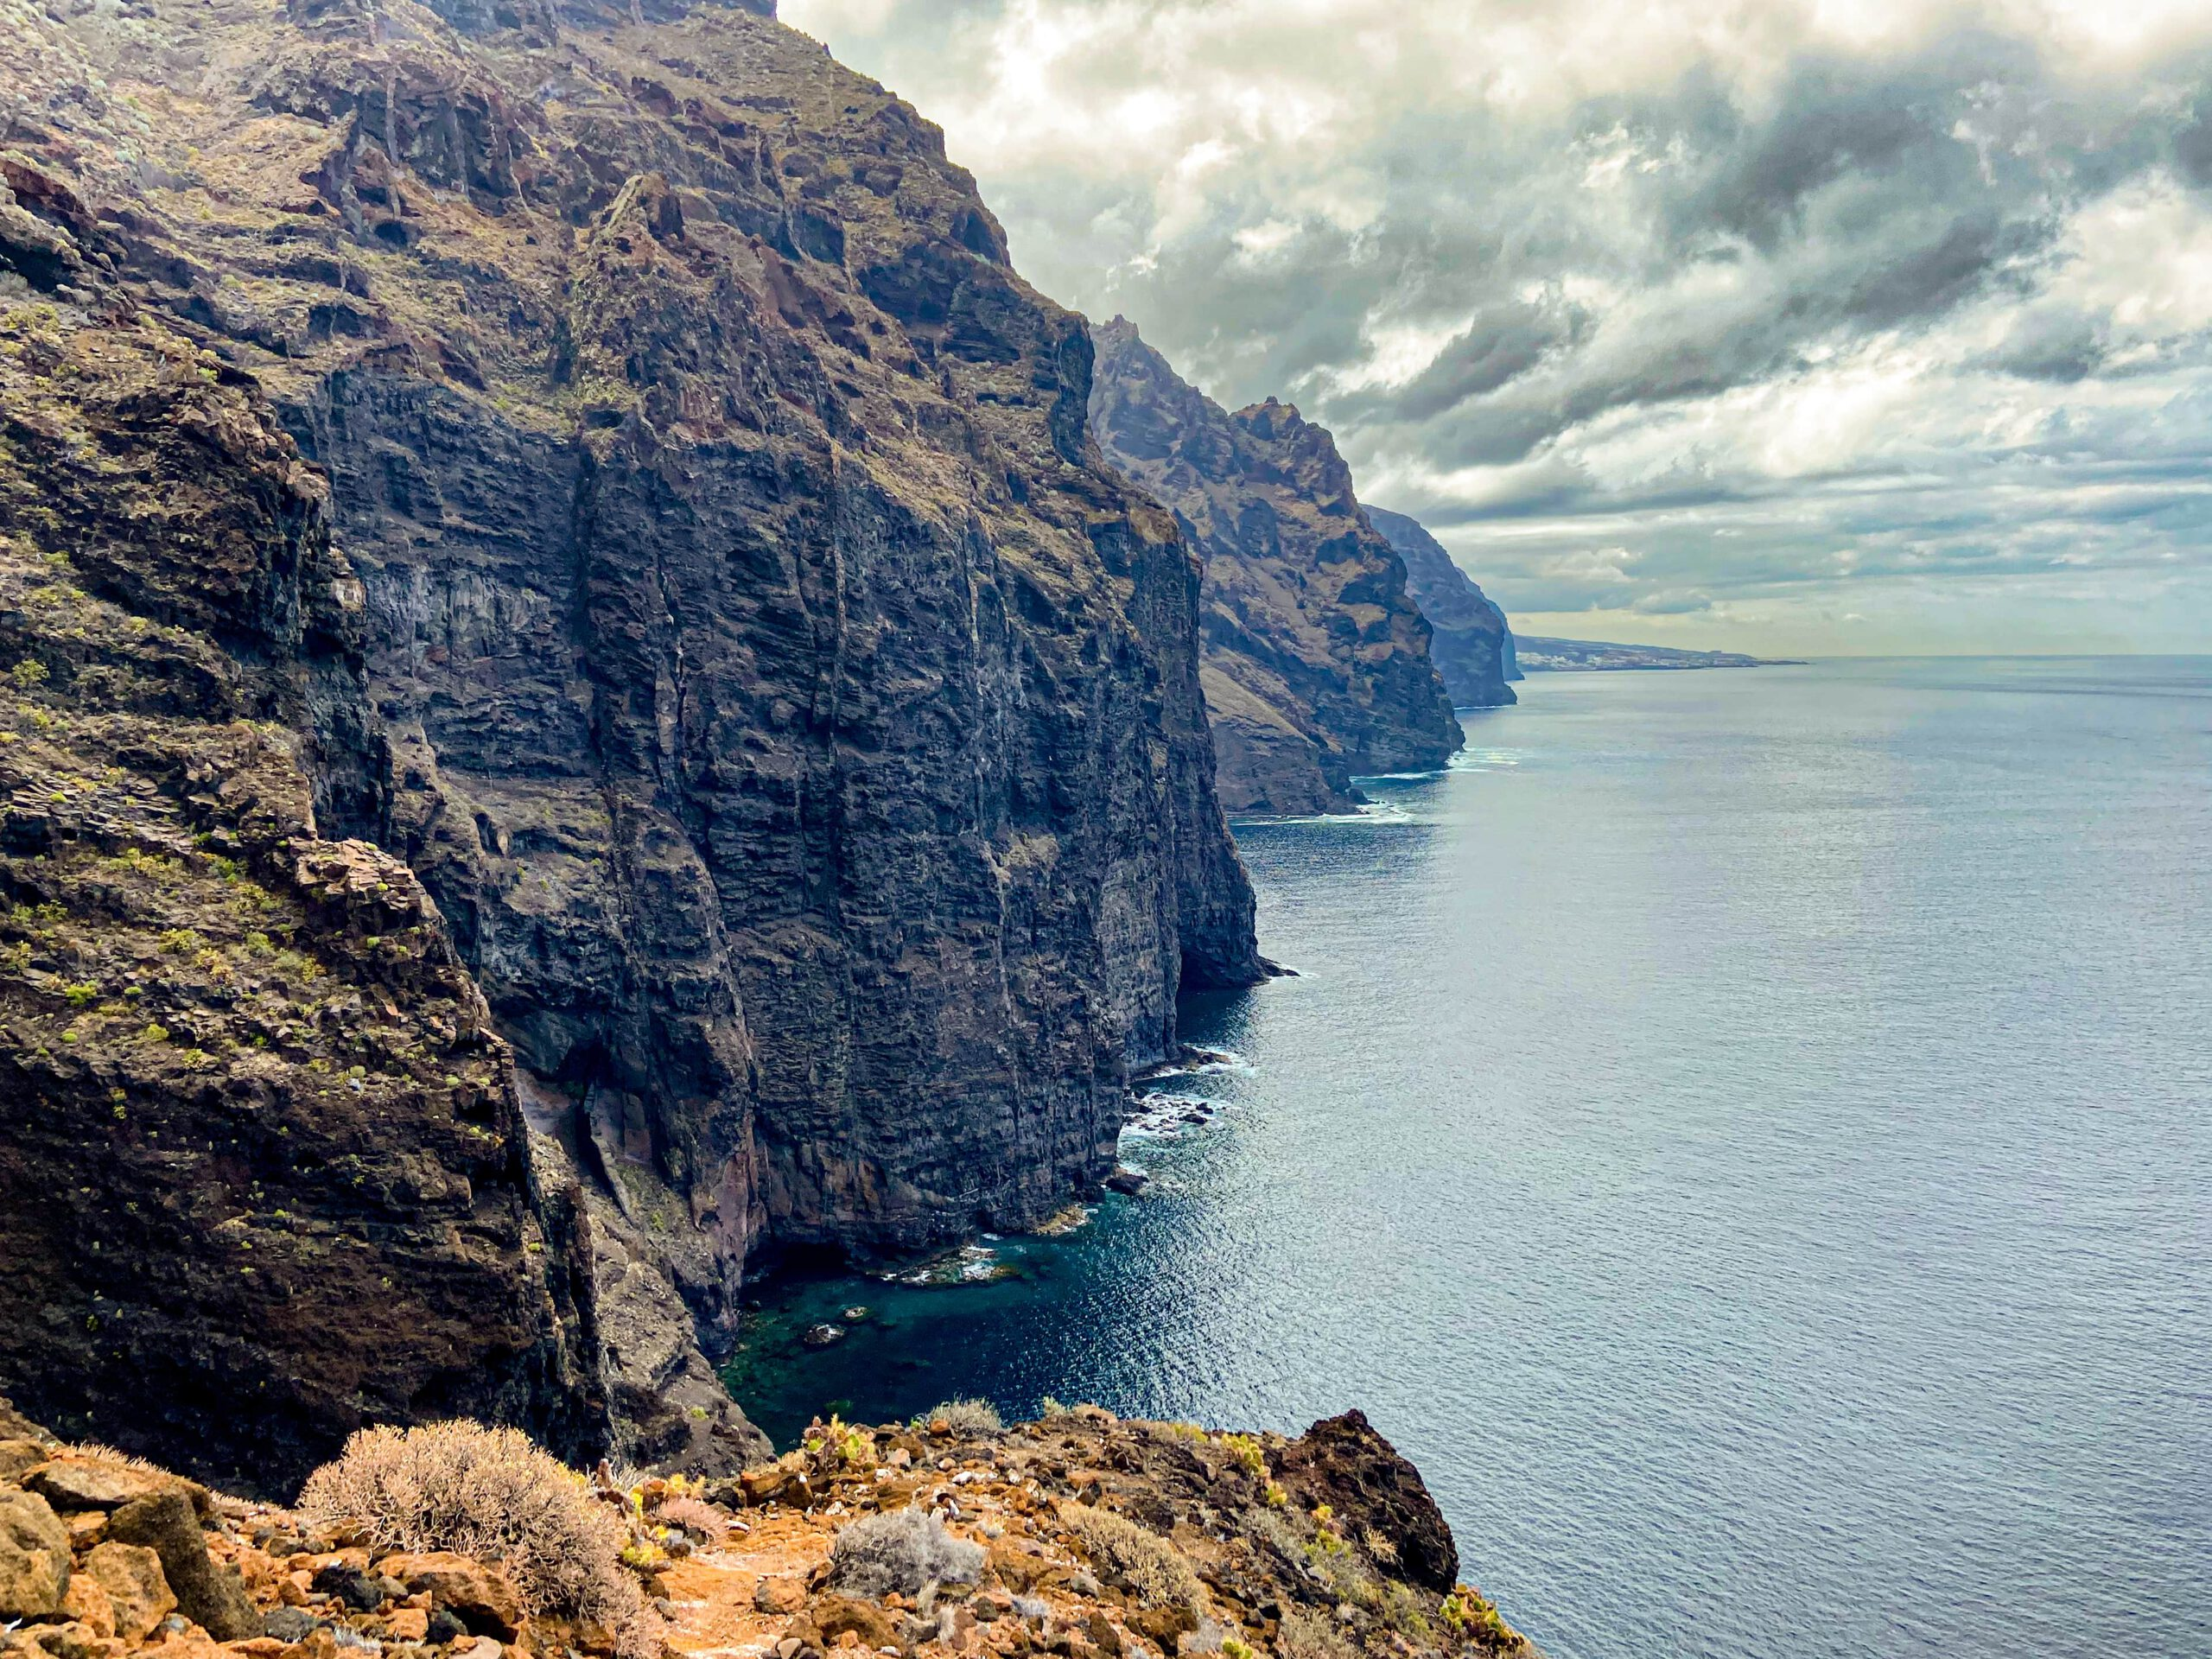 View from the hiking trail to the cliffs and Los Gigantes in the background